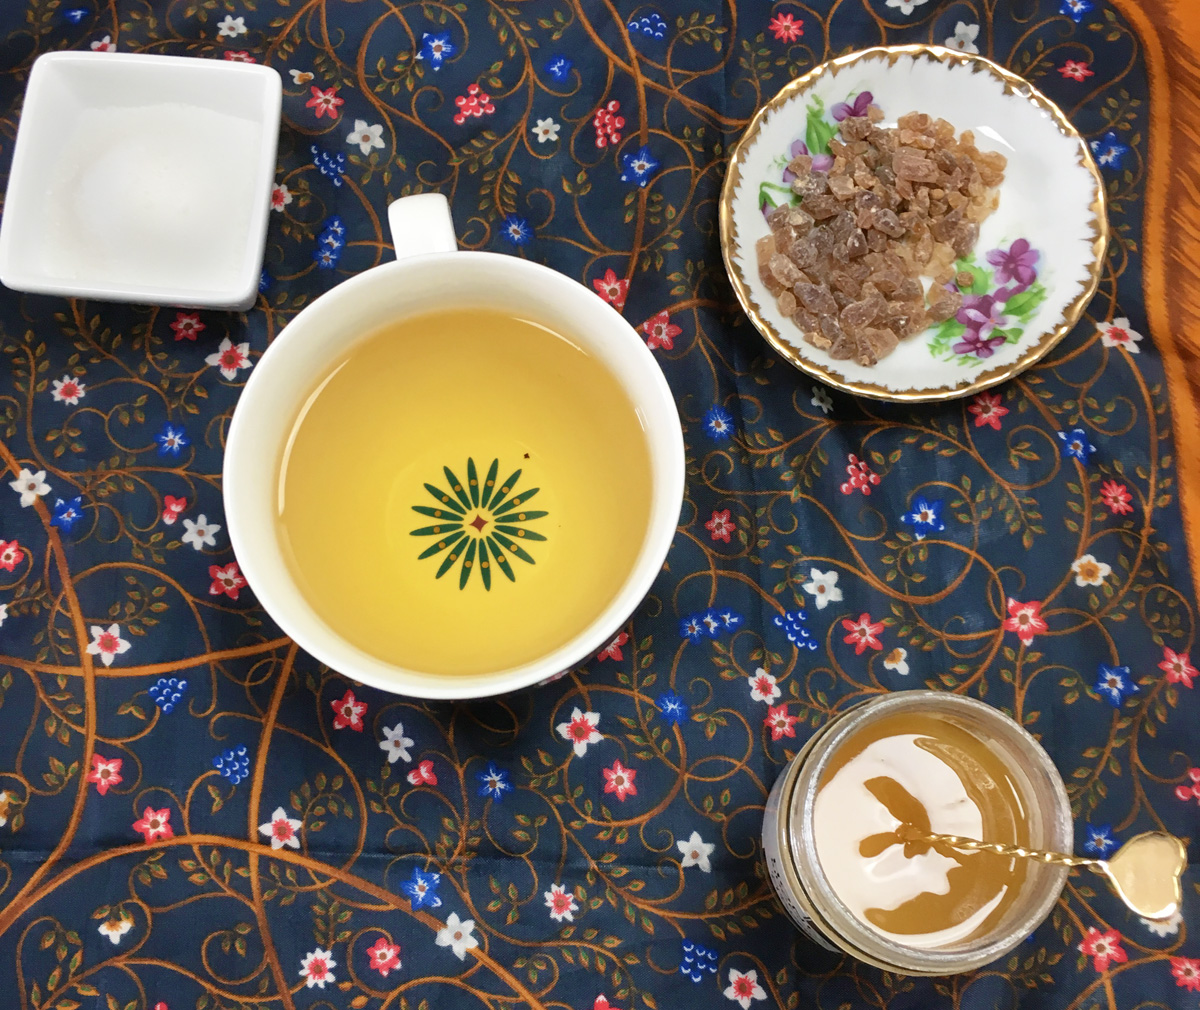 Overhead view of a cup of unsweetened tea surrounded by a jar of honey and two bowls of sugar on a dark blue floral print cloth.